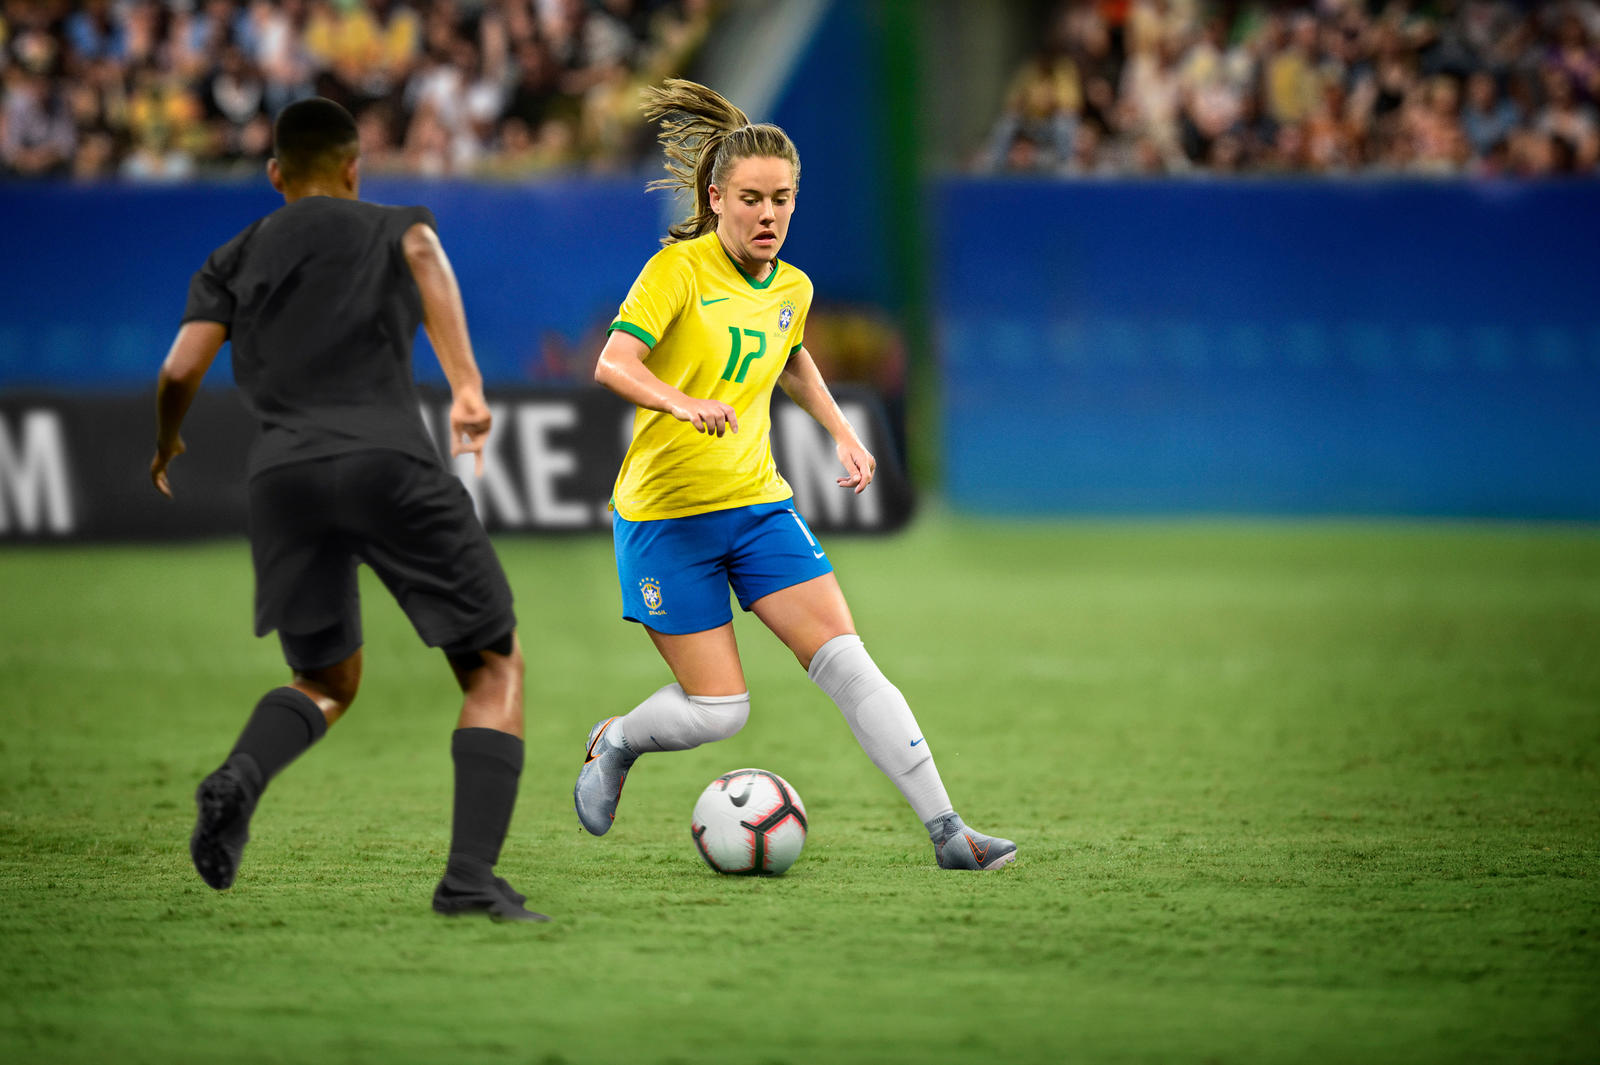 brazil-national-team-kit-2019-performance-002_85989.jpg